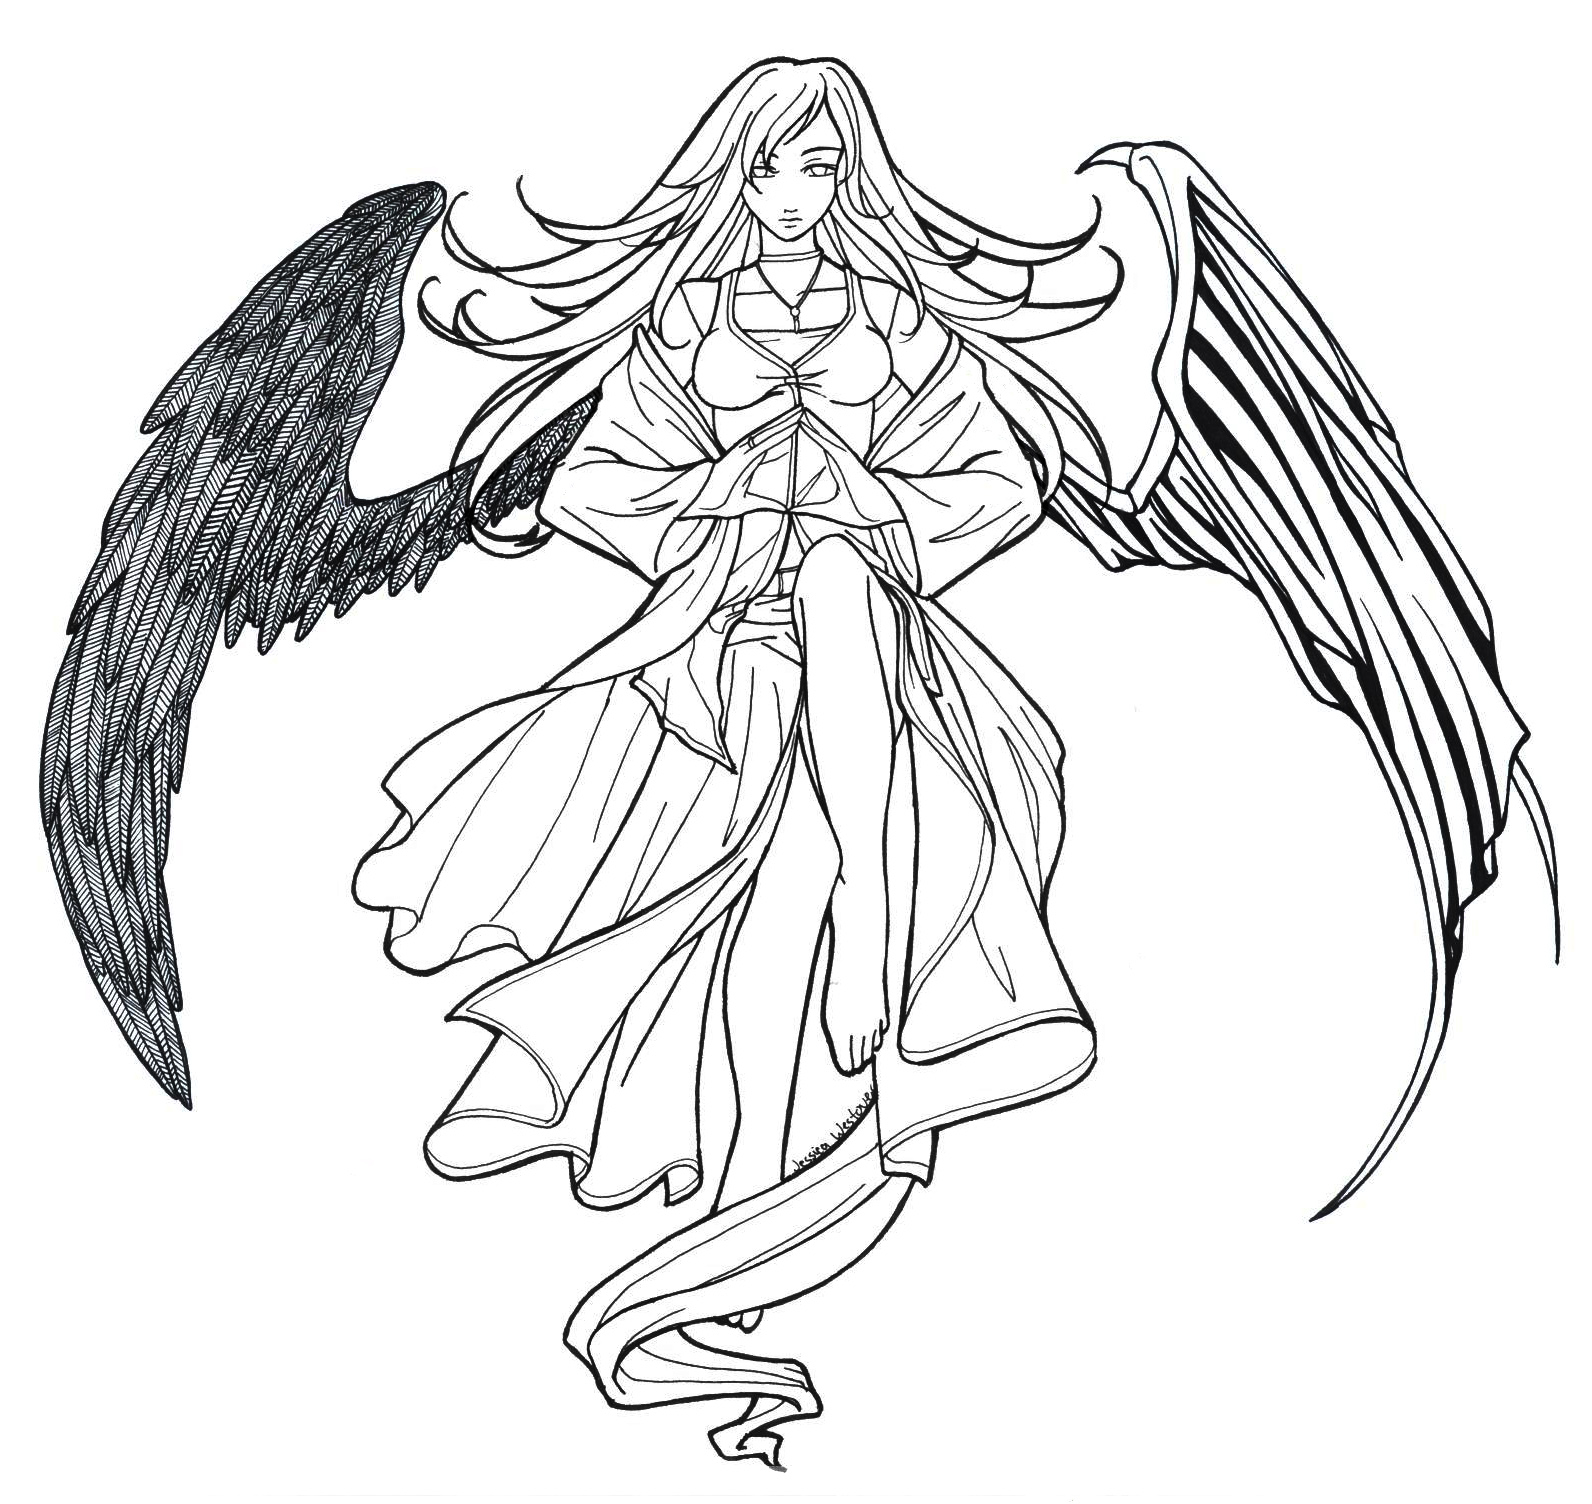 Fallen Angel Drawing at GetDrawings.com | Free for personal use ...